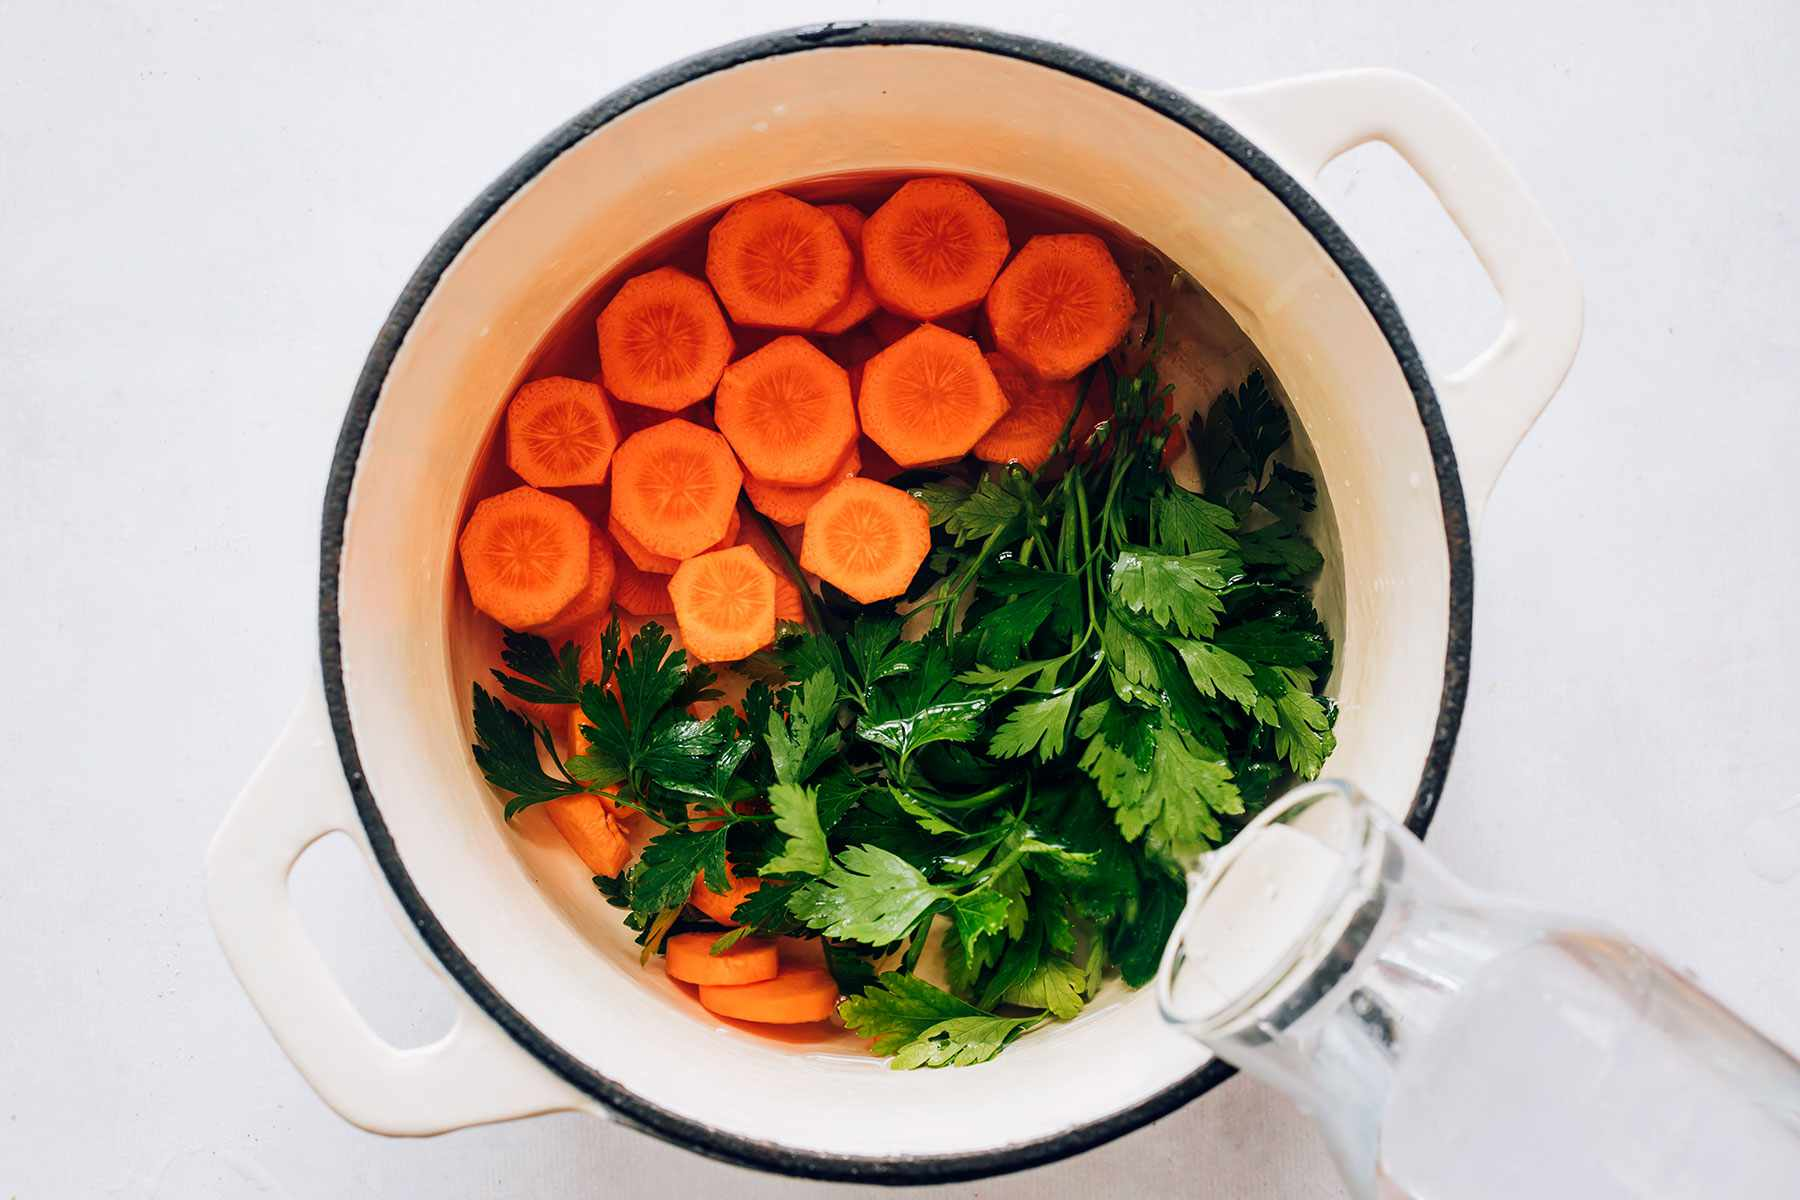 cold water, carrots, and parsley in a pot